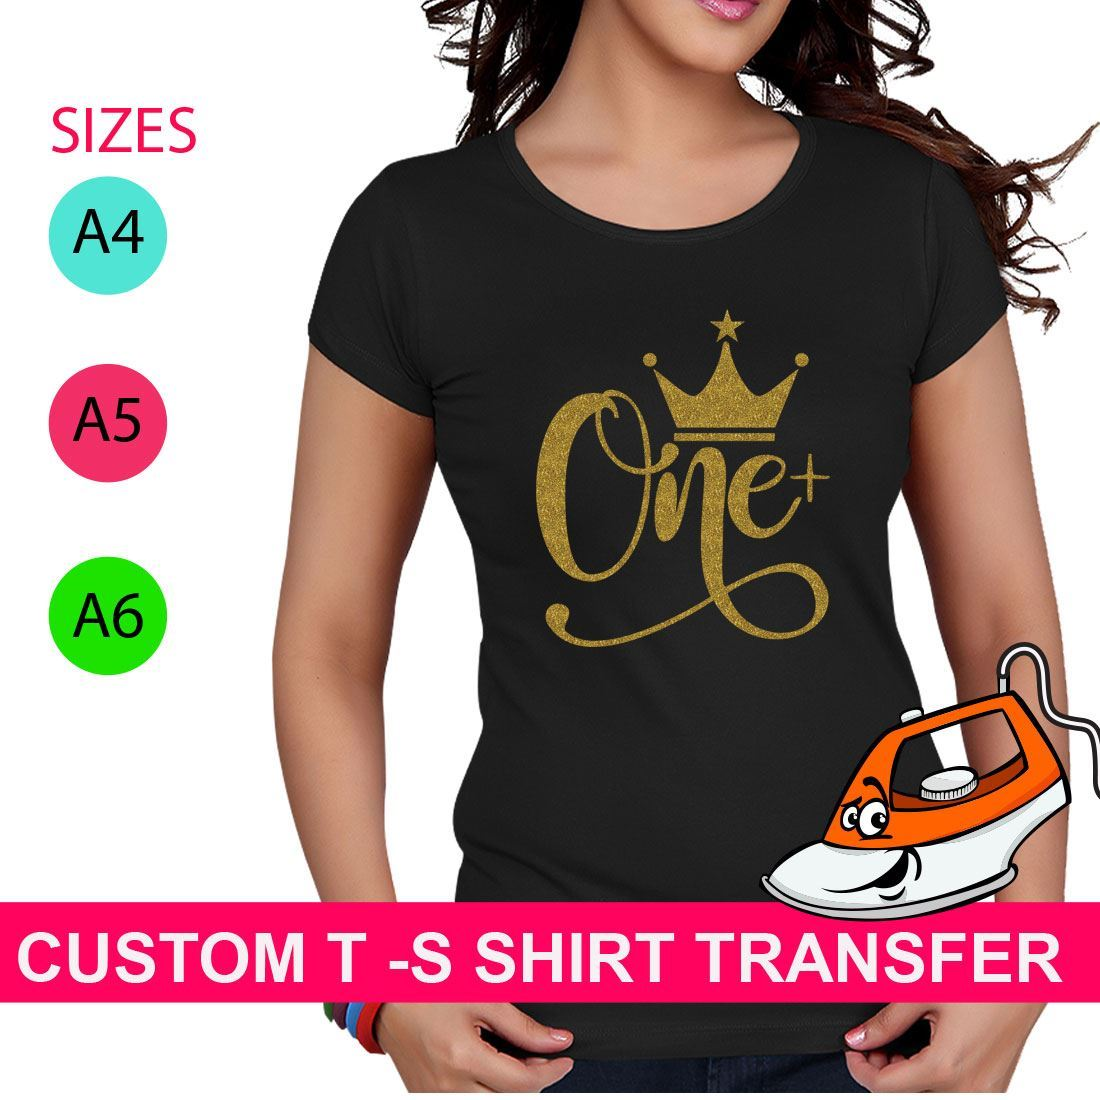 Design Crown One Print T Shirt Iron On Fabric Heat Transfer Hen Party Top Crew